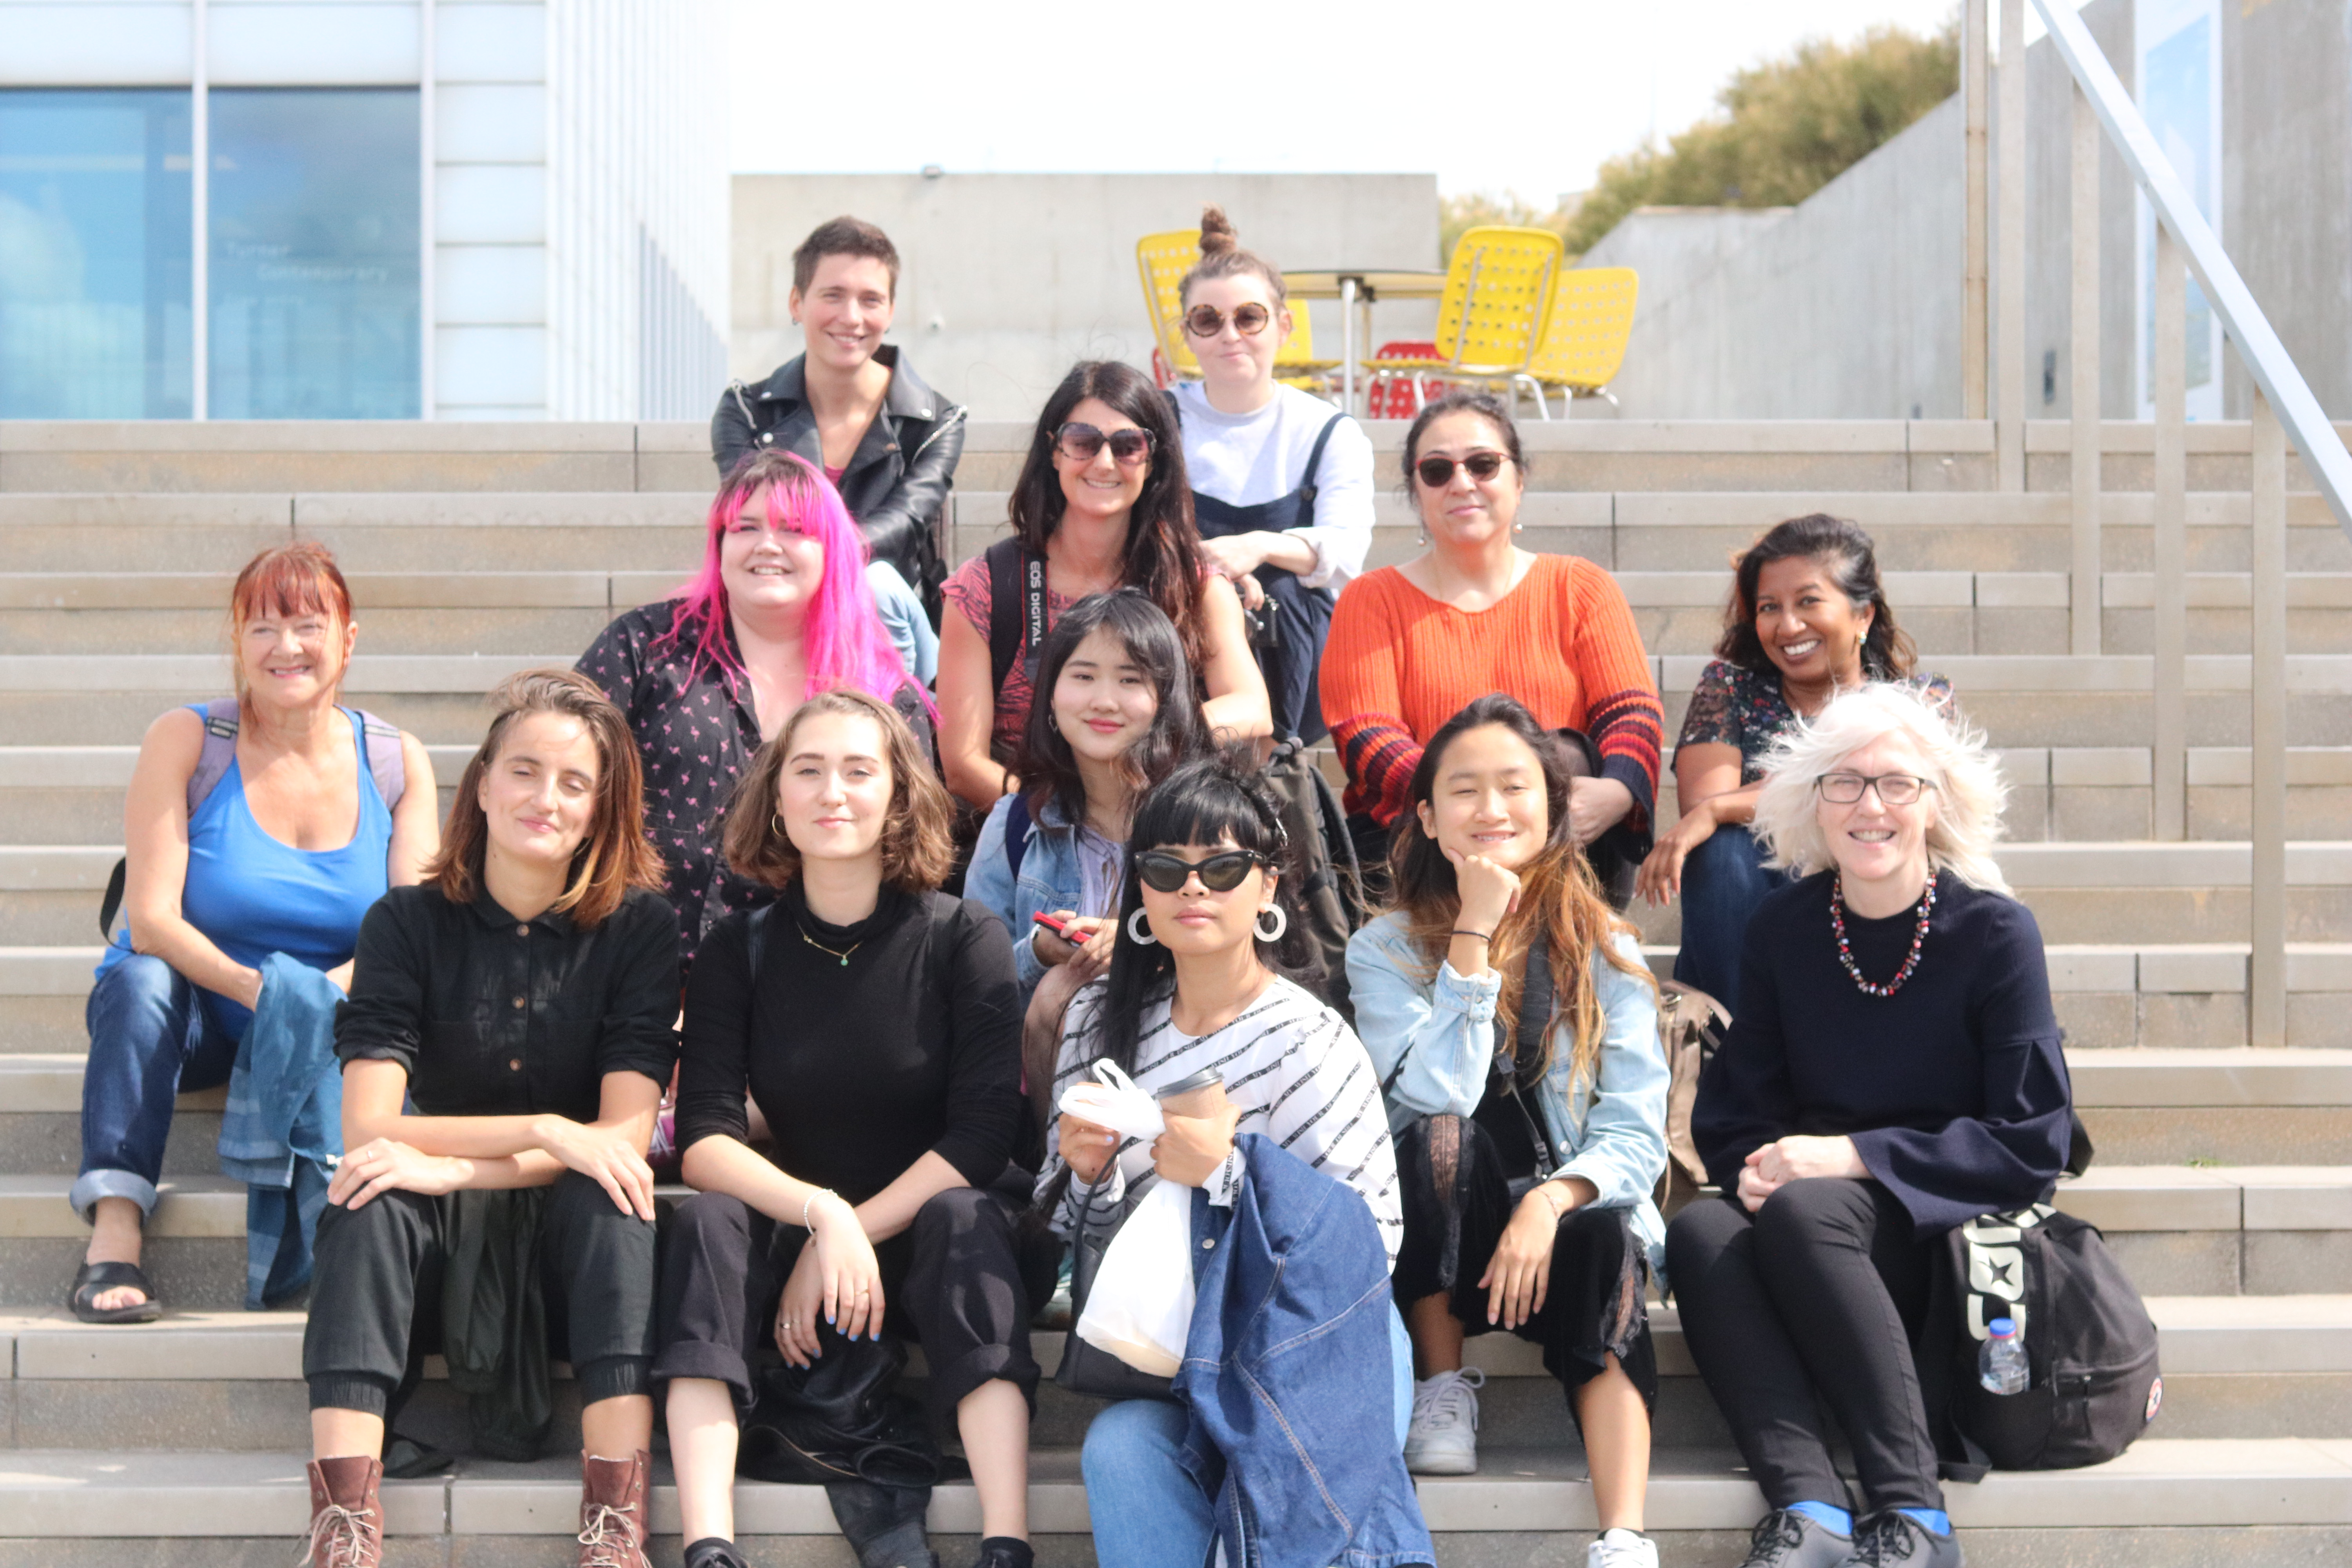 Group Photo of students who came on the annual Post-Grad Community Margate Trip sitting on steps of Turner Contemporary Gallery